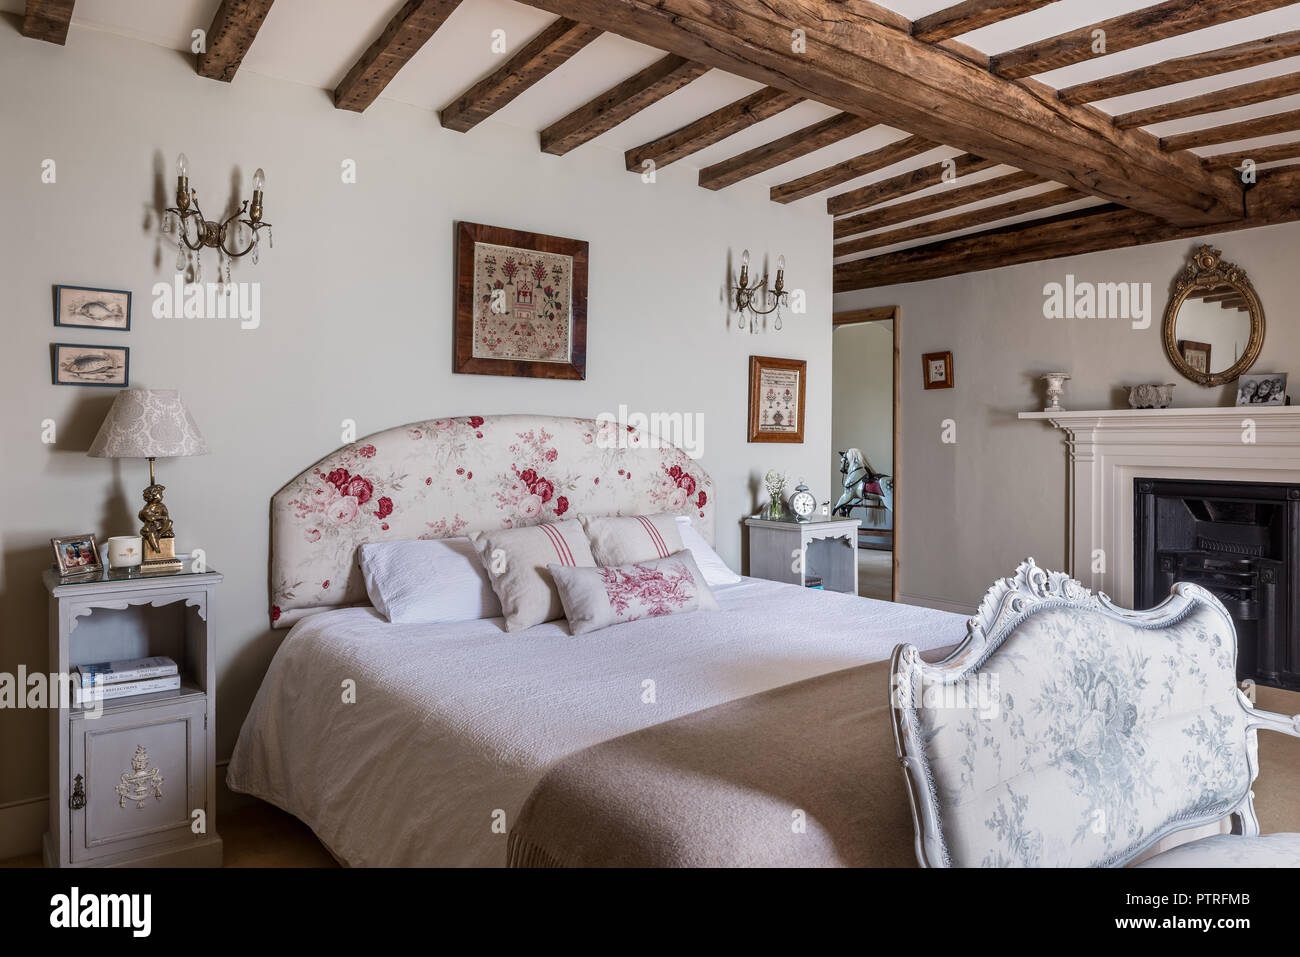 Emboidered folk art above double bed with floral headboard in 16th century farmhouse renovation - Stock Image